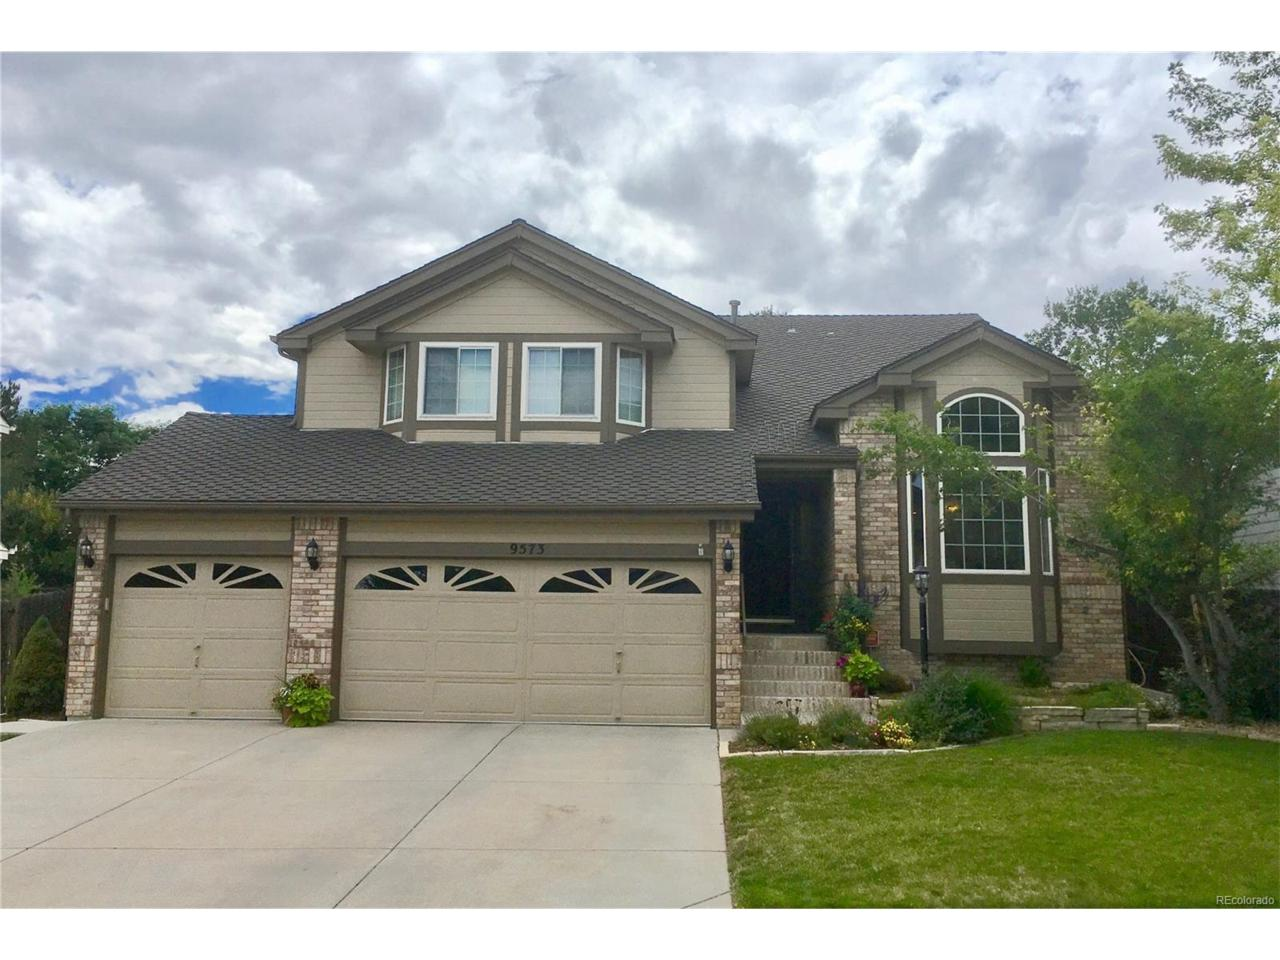 9573 Las Colinas Drive, Lone Tree, CO 80124 (MLS #8099352) :: 8z Real Estate